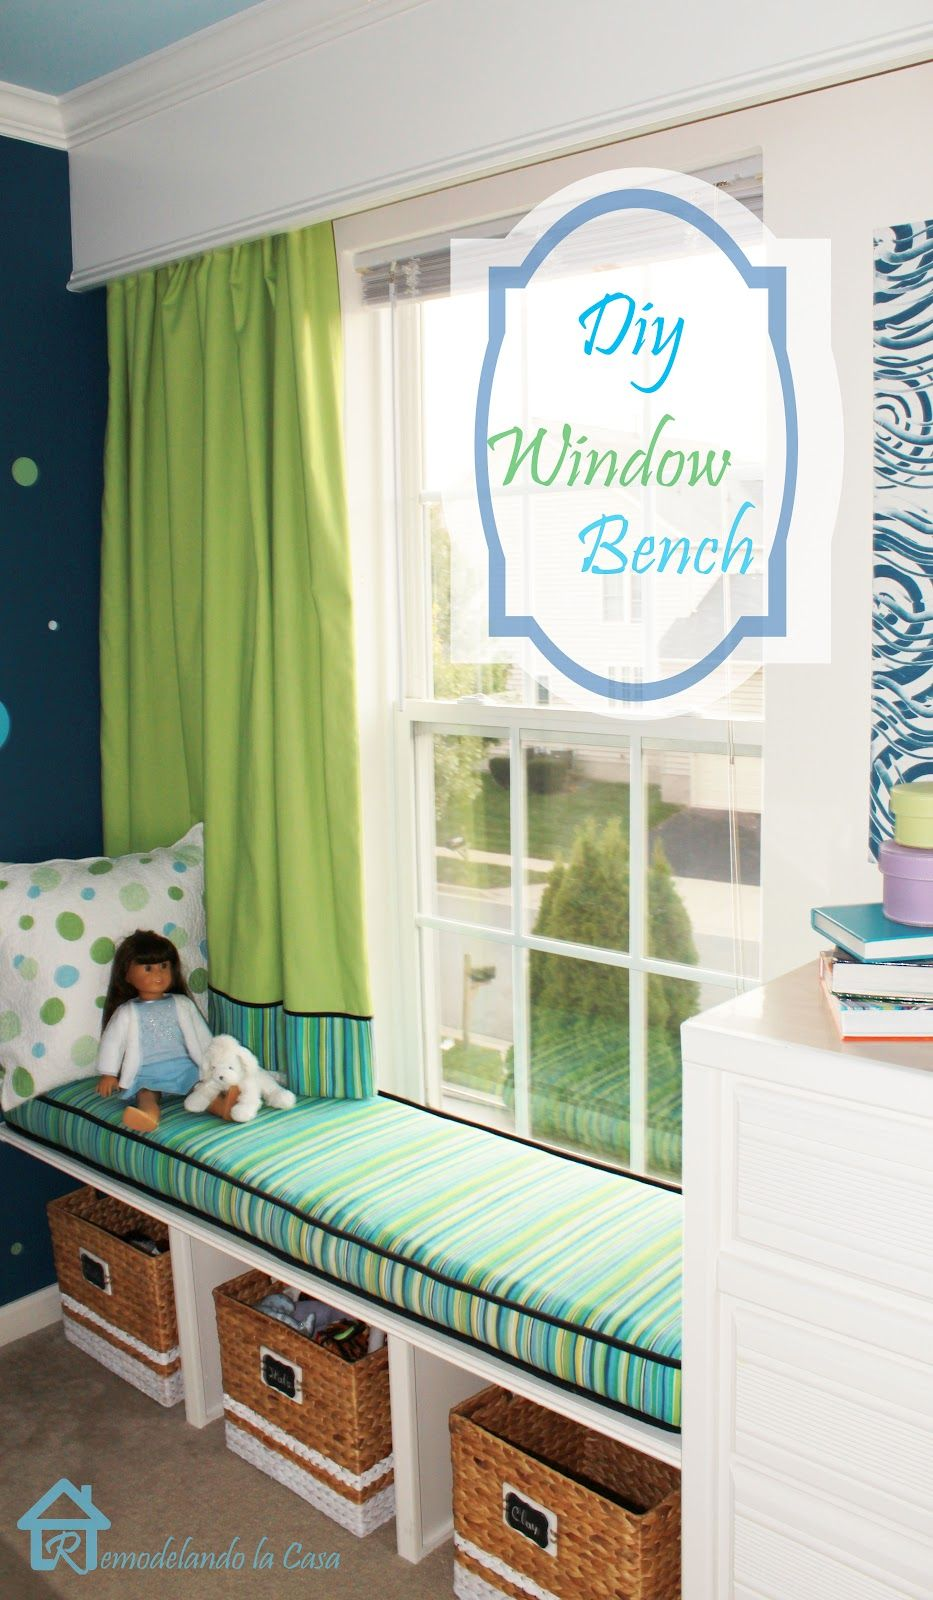 Bedroom Window Bench diy window bench | window benches, big girl rooms and toy storage